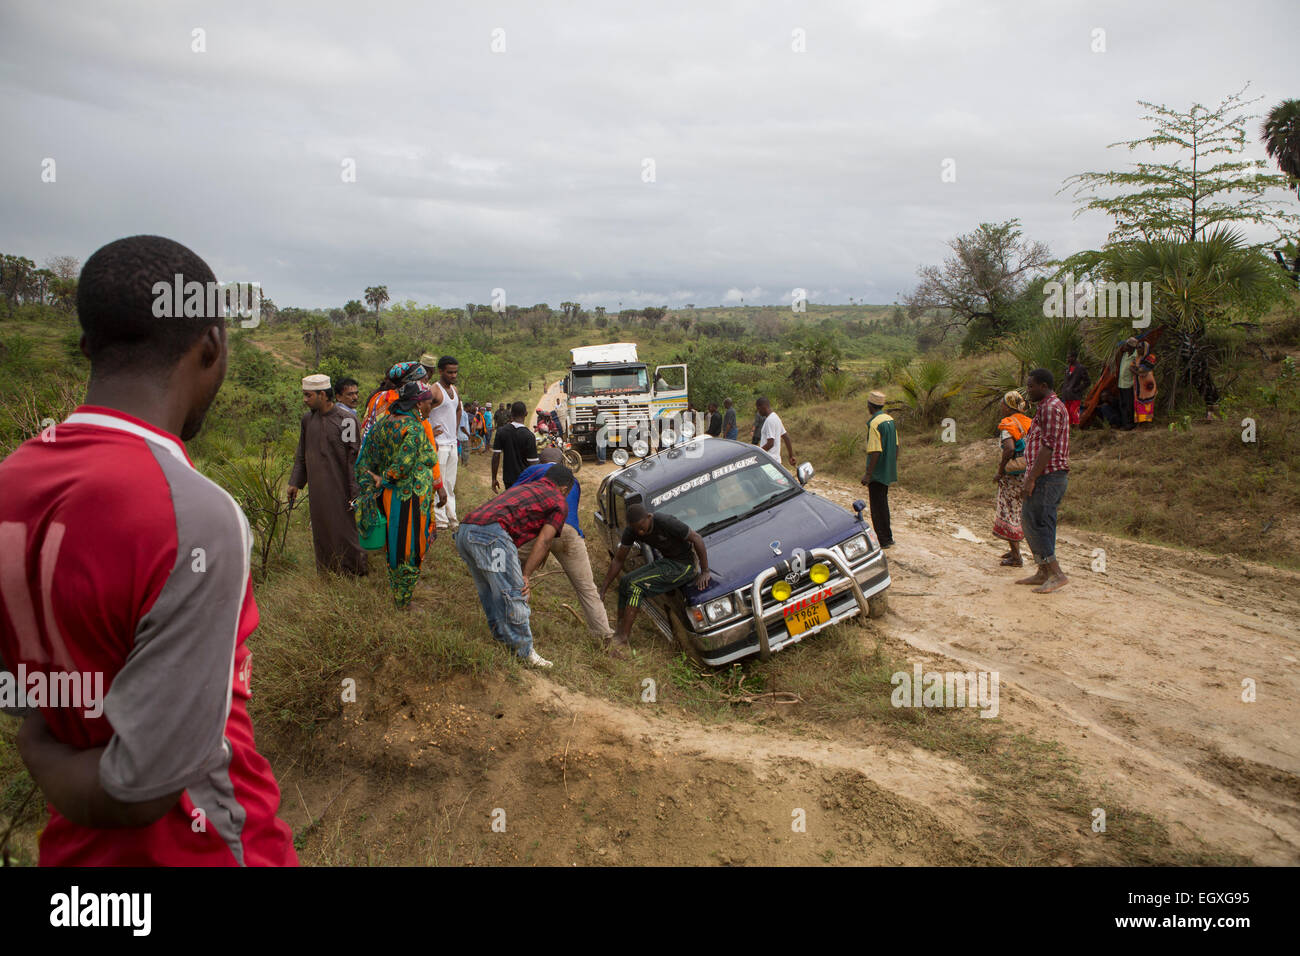 Disabled vehicles on an impassible road near Tanga, Tanzania, East Africa. - Stock Image